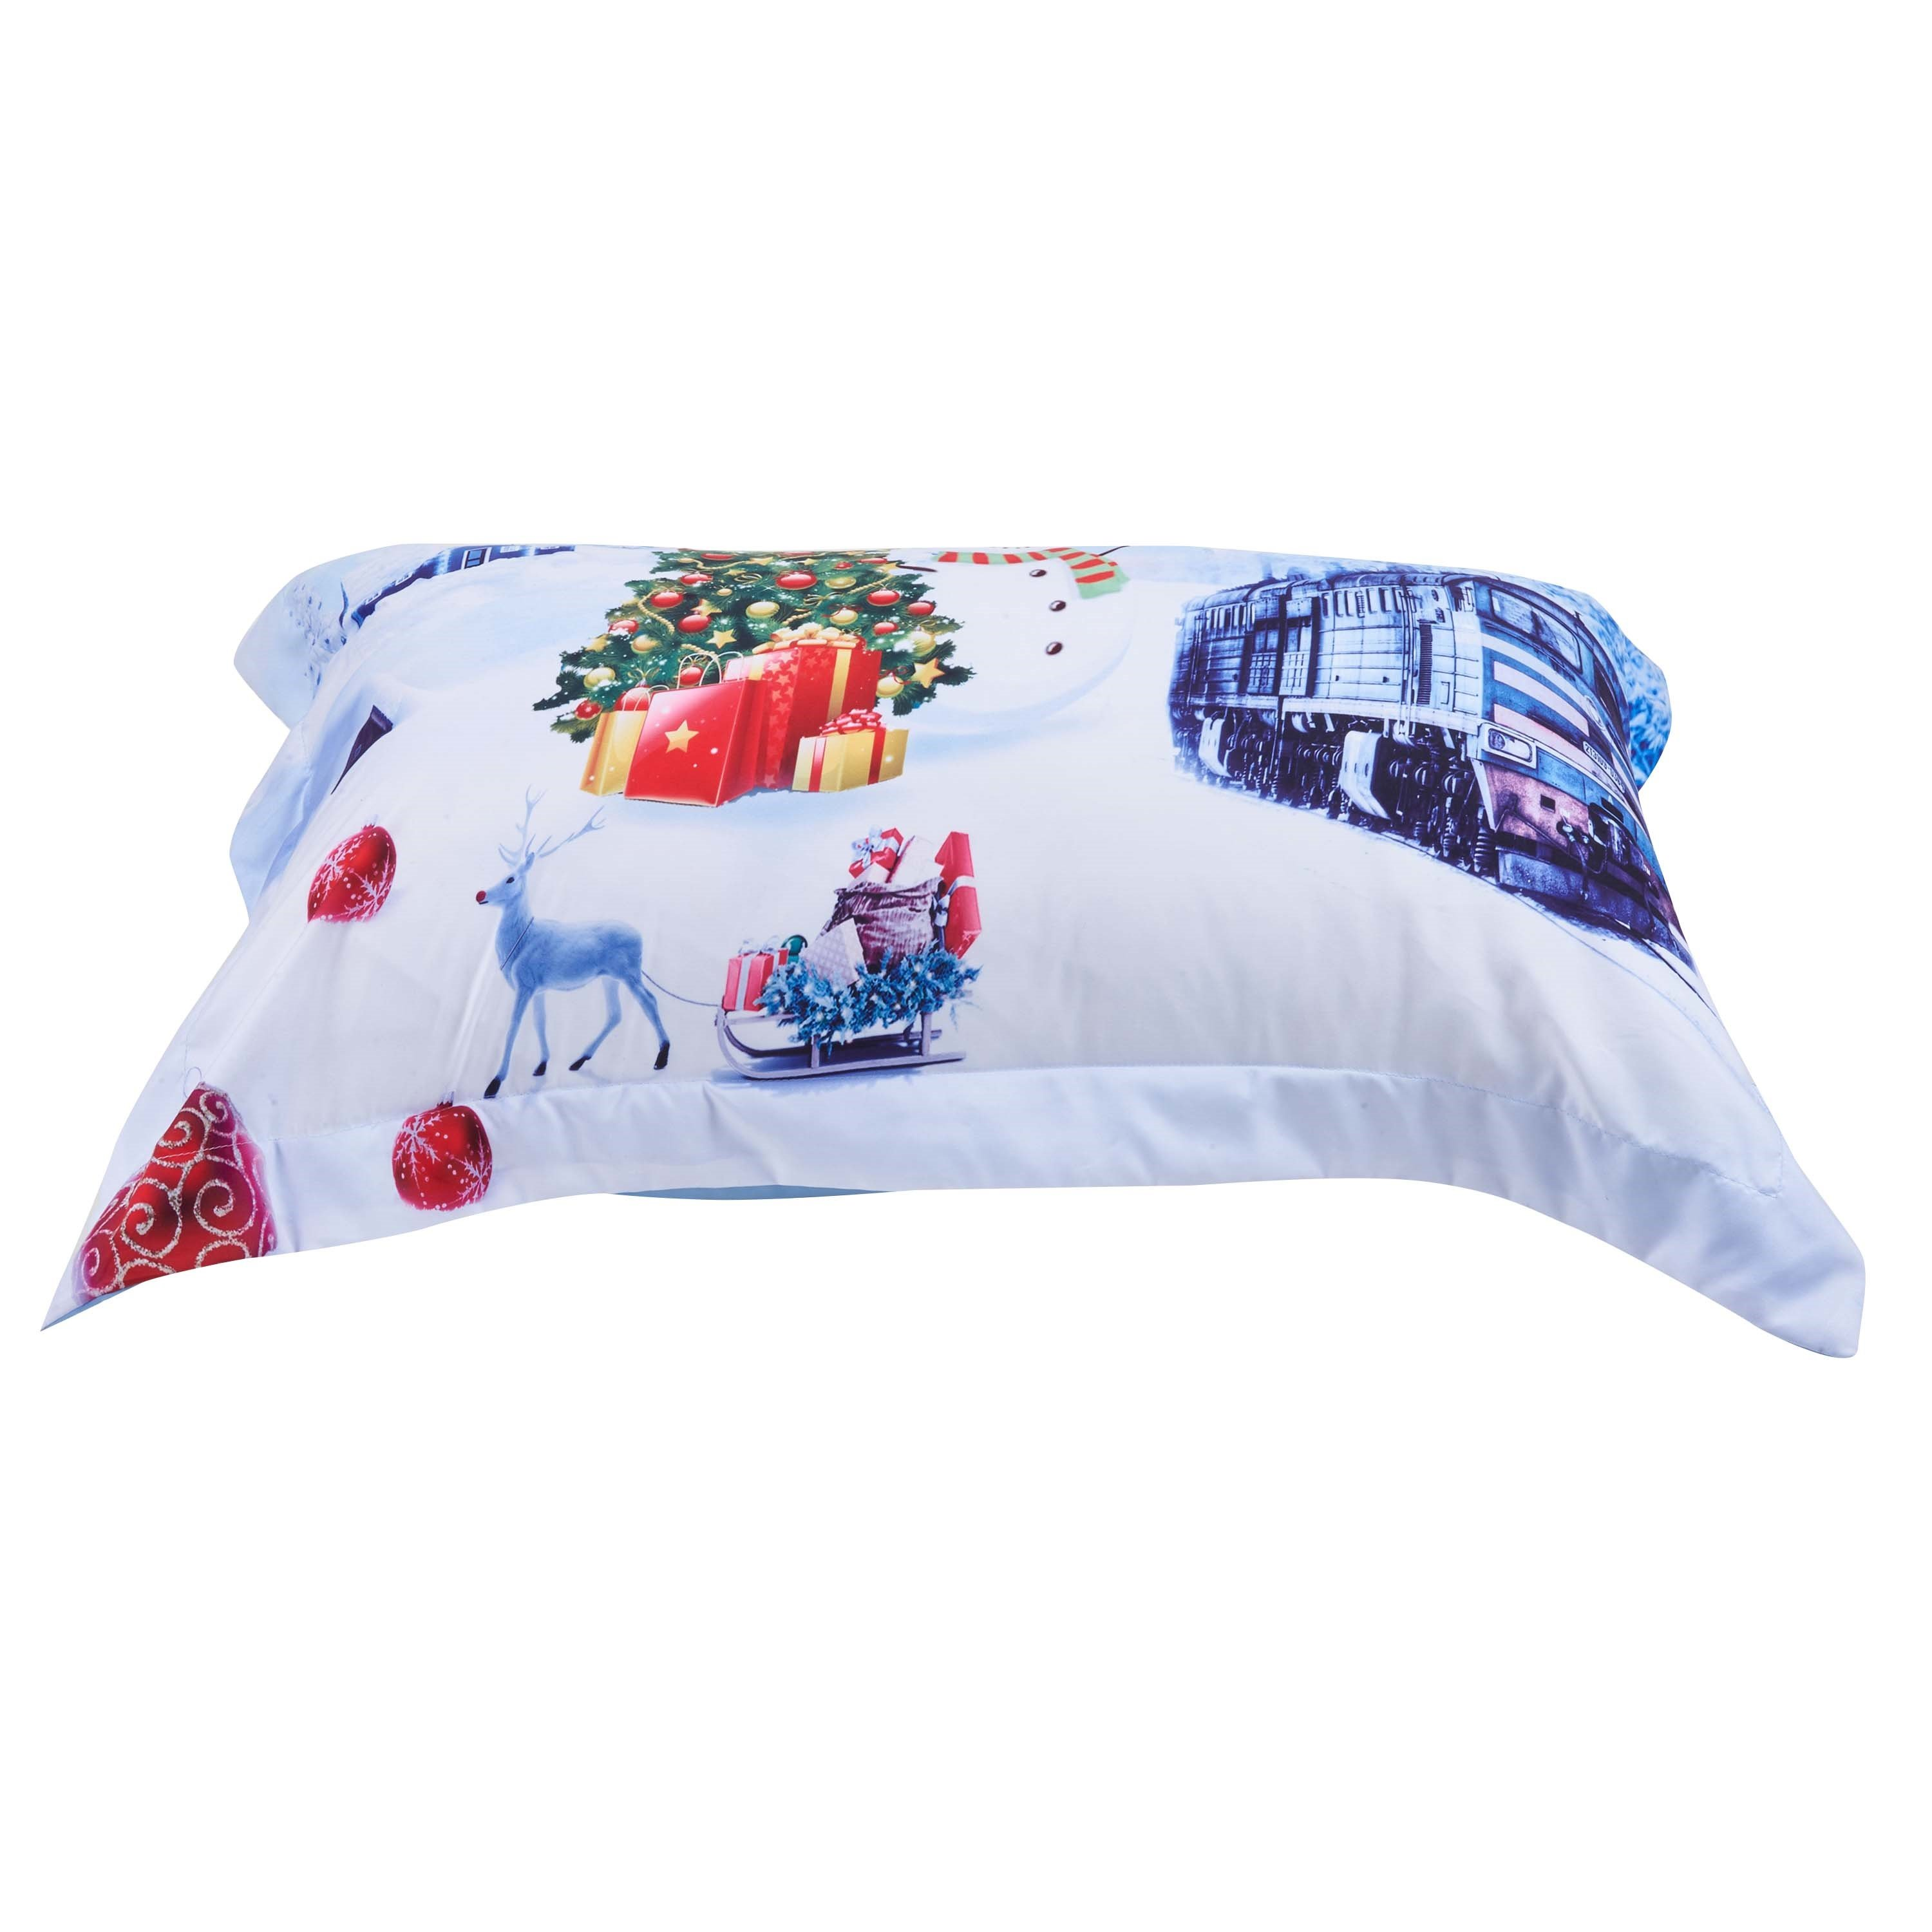 Christmas Snowman and Train Printed Cotton 3D 4-Piece Bedding Sets/Duvet Covers